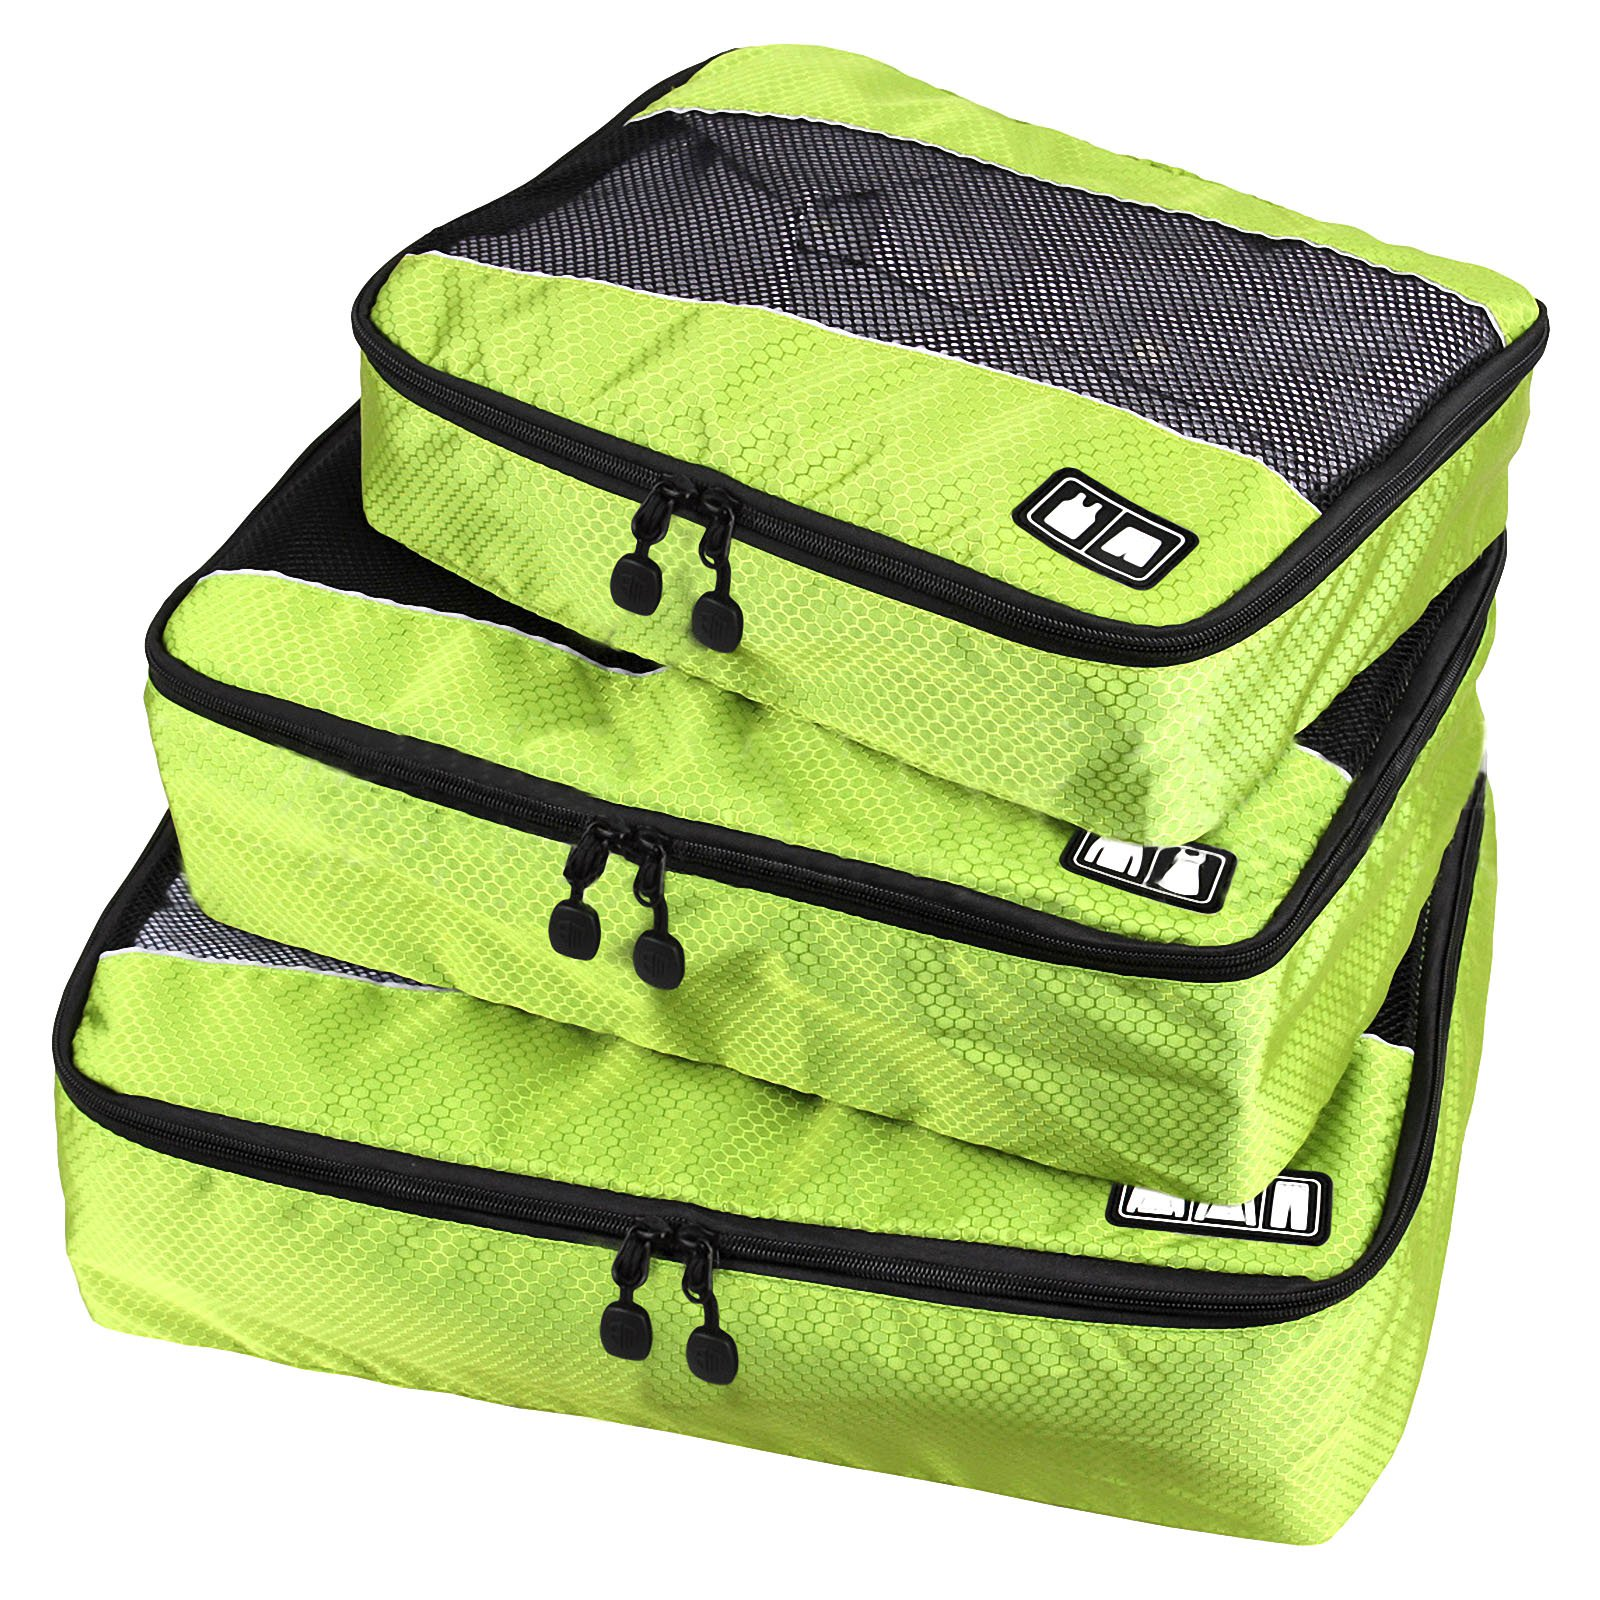 Travel Packing Organizers - Clothes Cubes Shoe Bags Laundry Pouches For Suitcase Luggage, Storage Organizer 3 Set Color Green